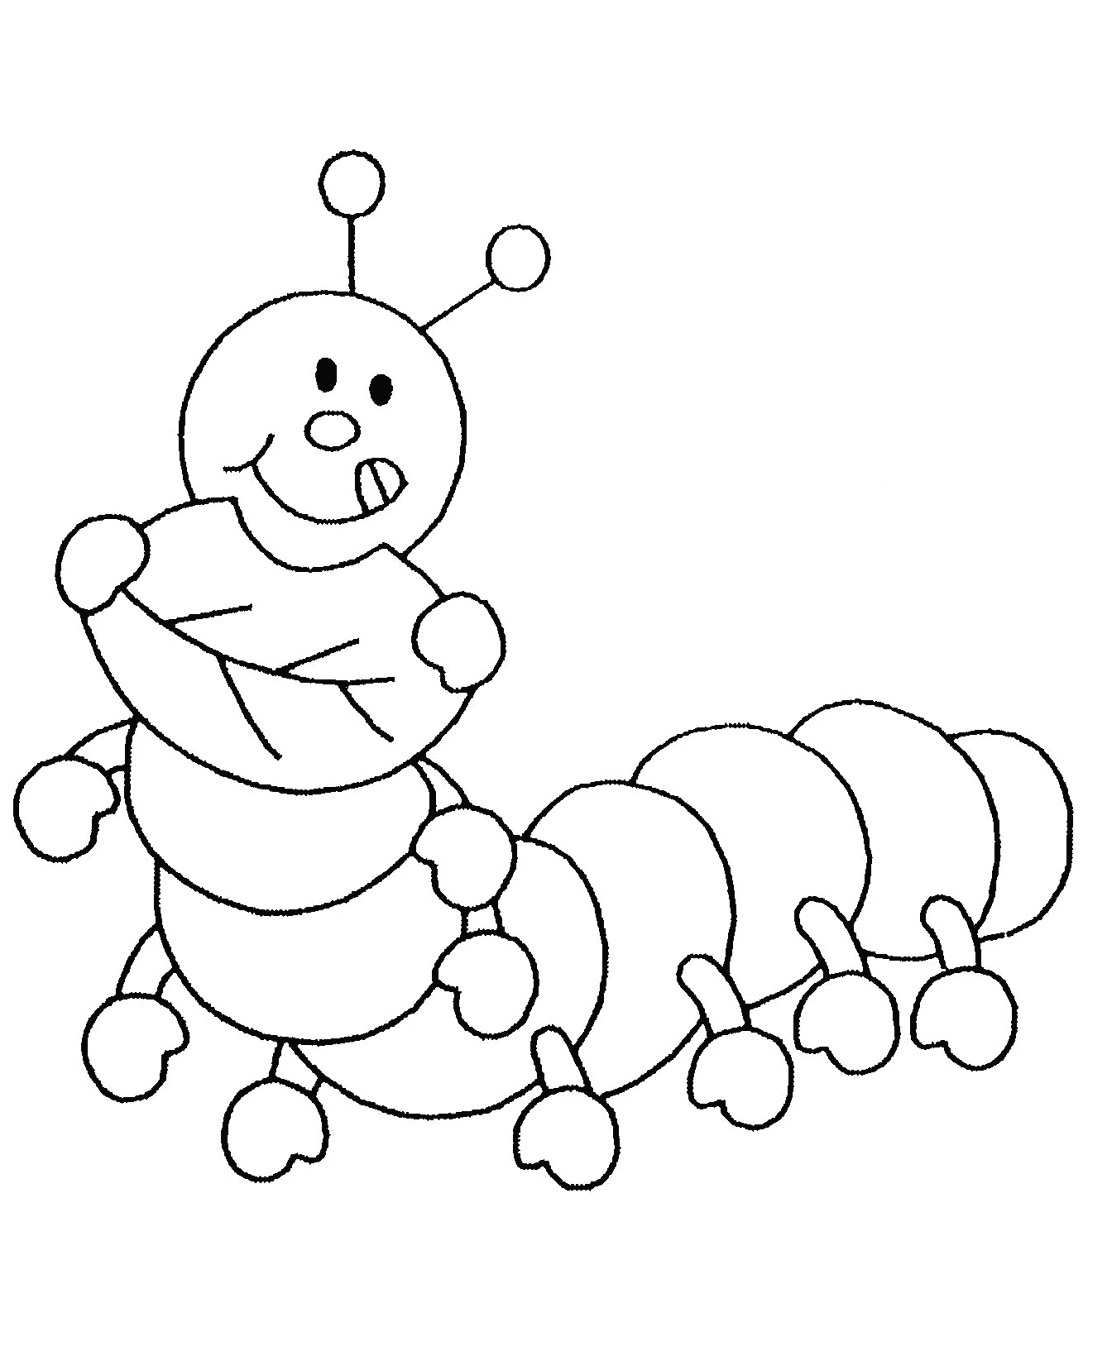 coloring pictures of insects insects to download insects kids coloring pages of pictures coloring insects